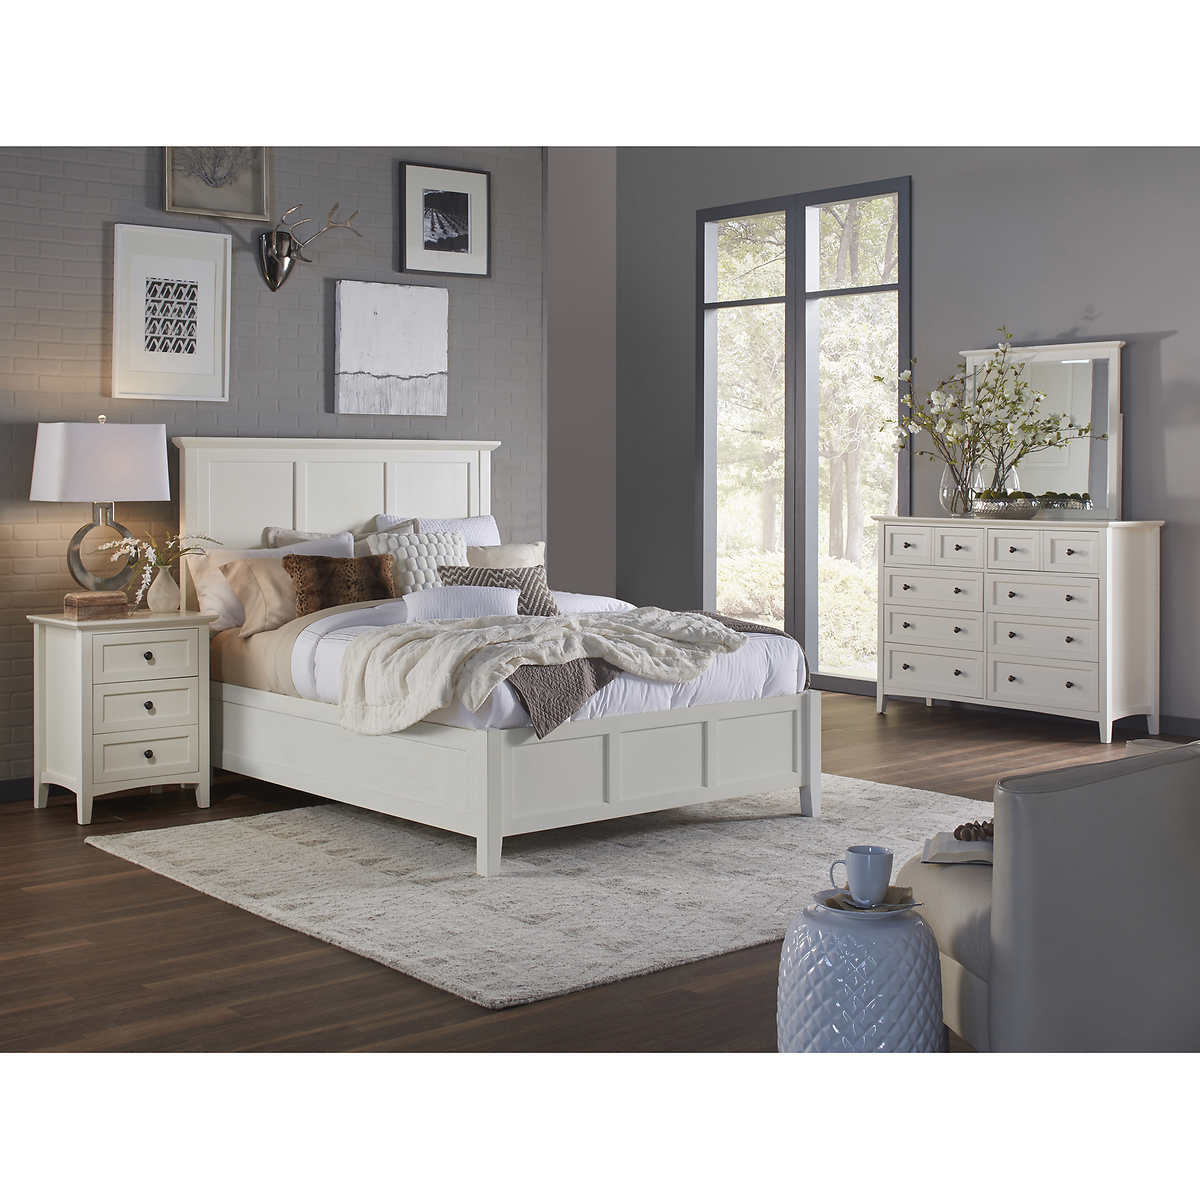 Paolina 5 Piece Queen Bedroom Set